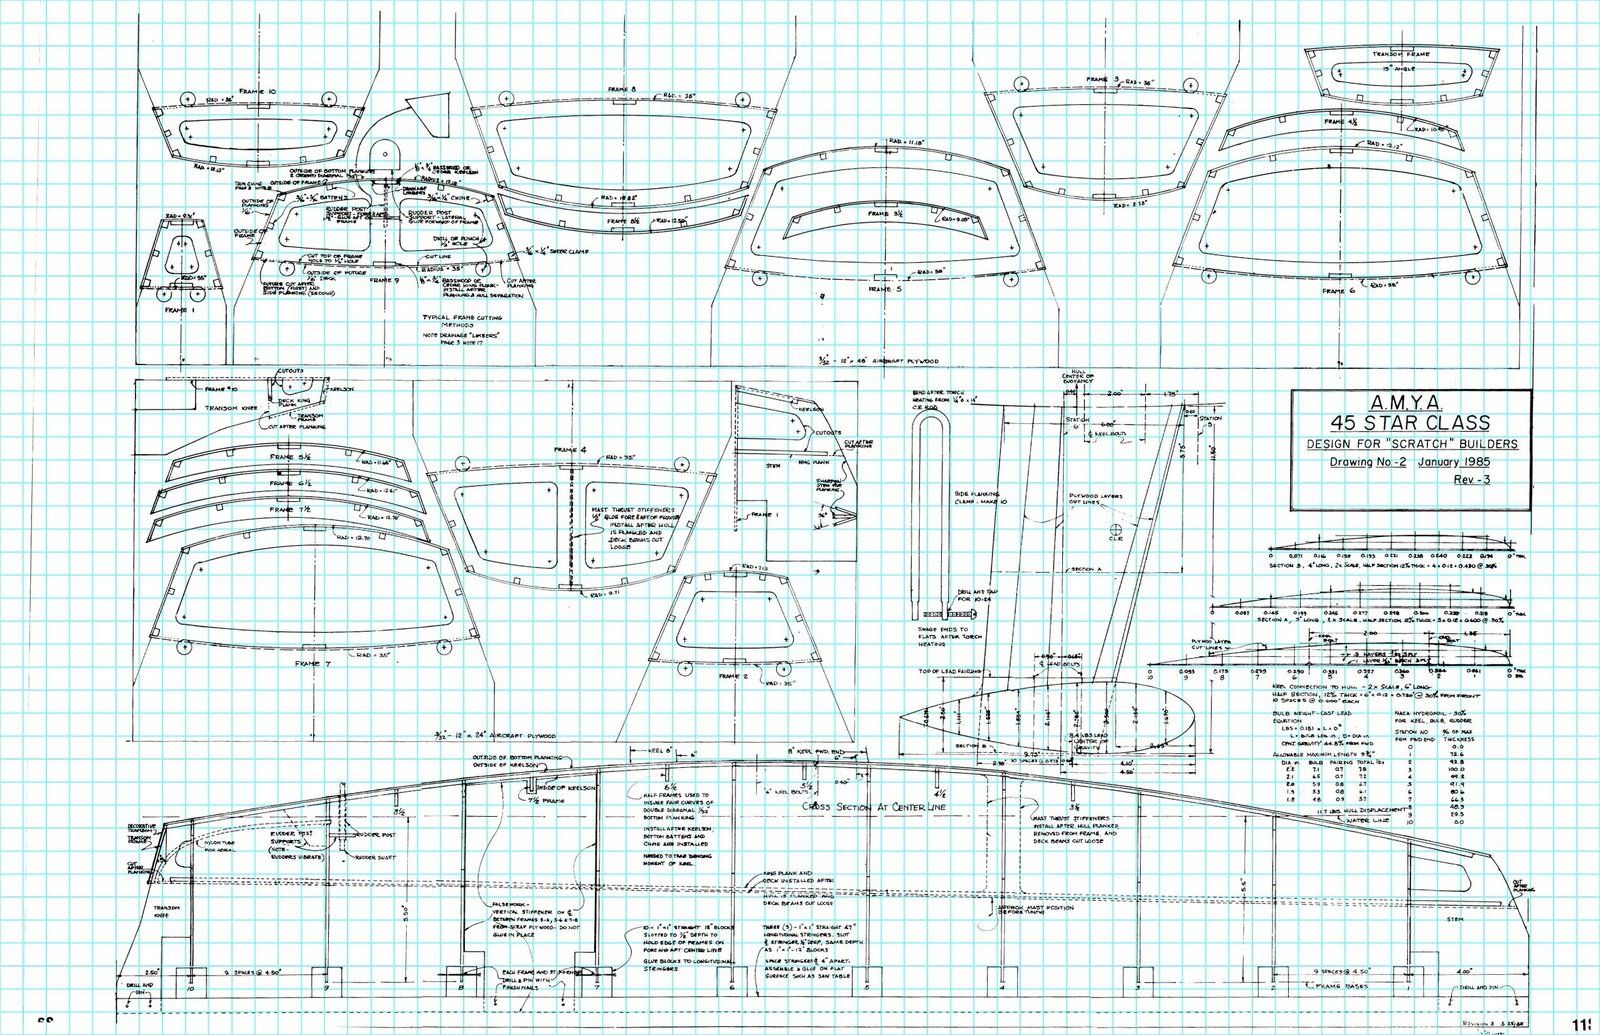 Chris craft model boat plans - Boat Plans